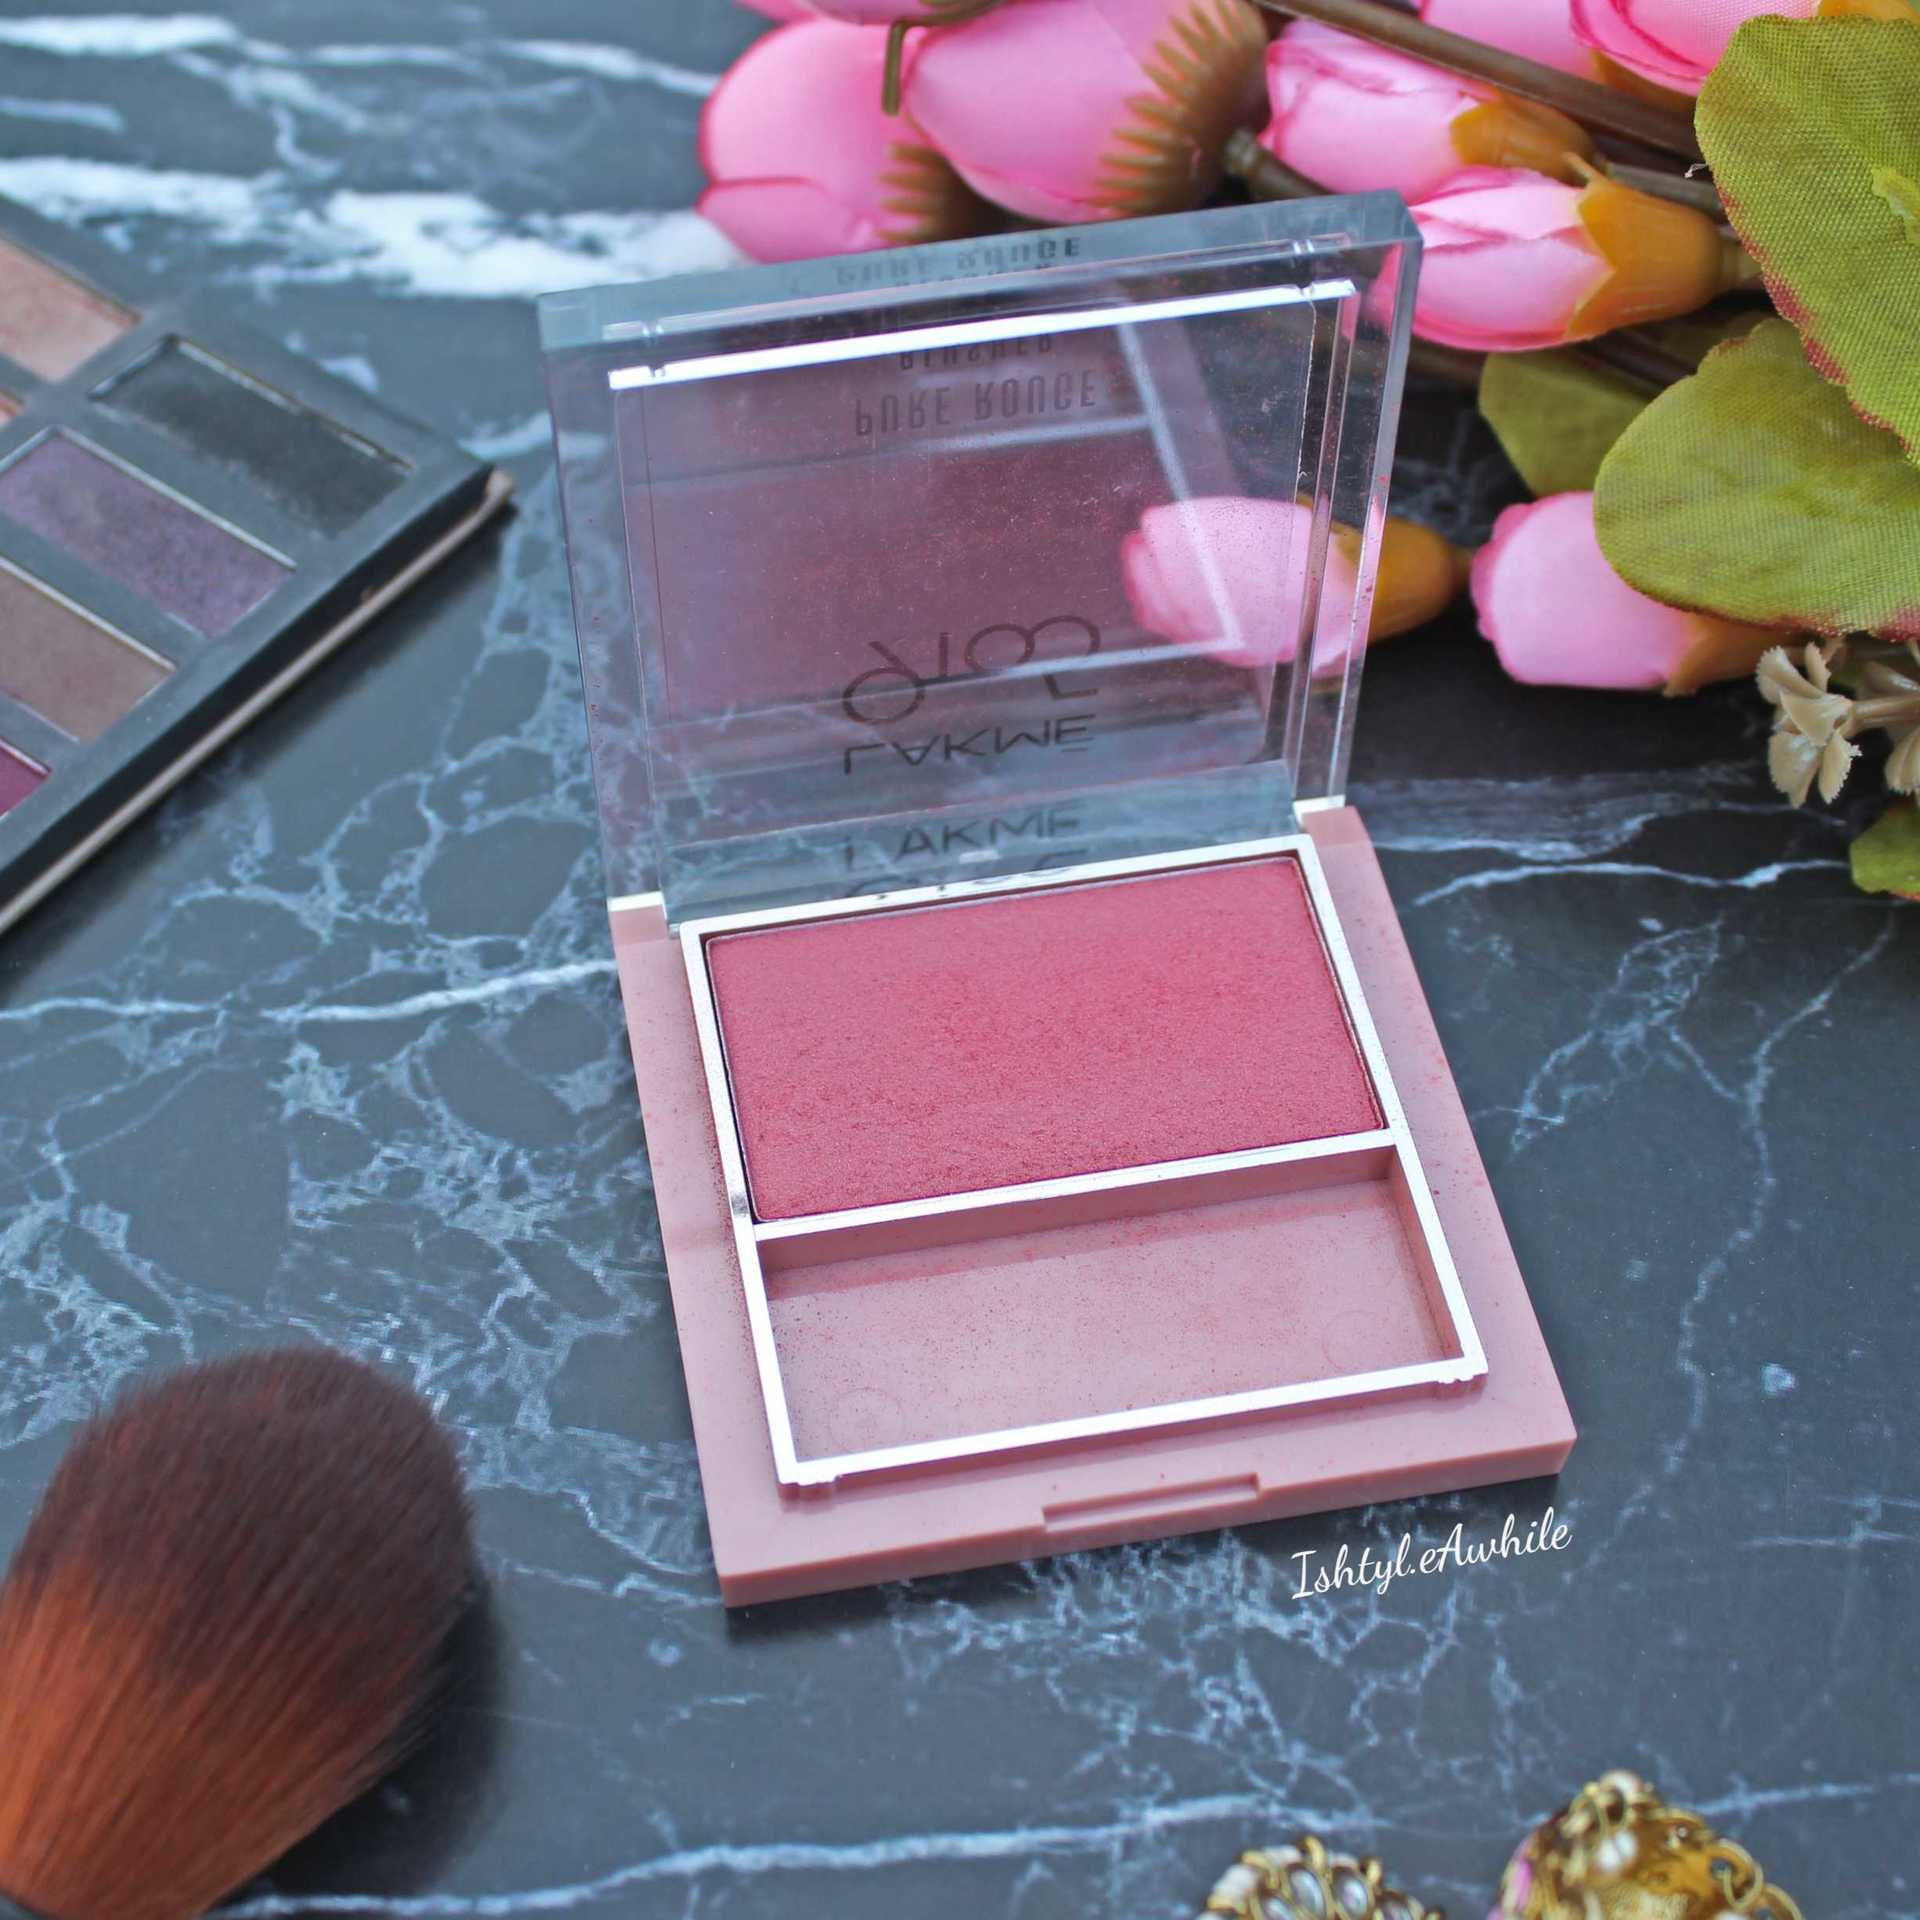 IshtyleAwhile - Lakme Blush in peach affair review and swatches